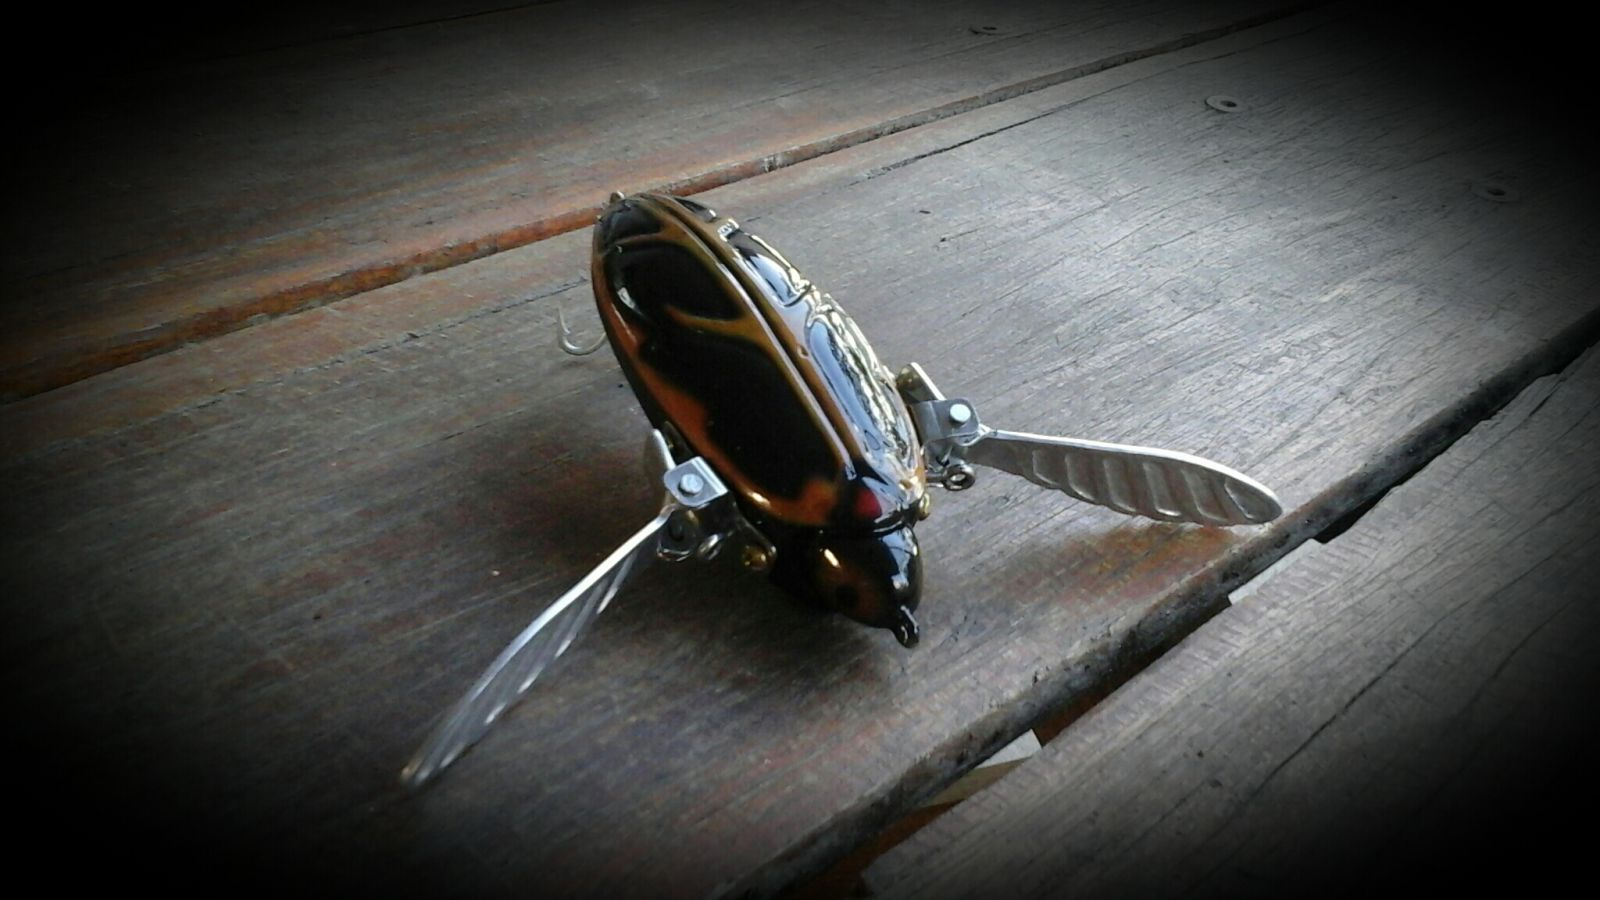 SURFACE BUG